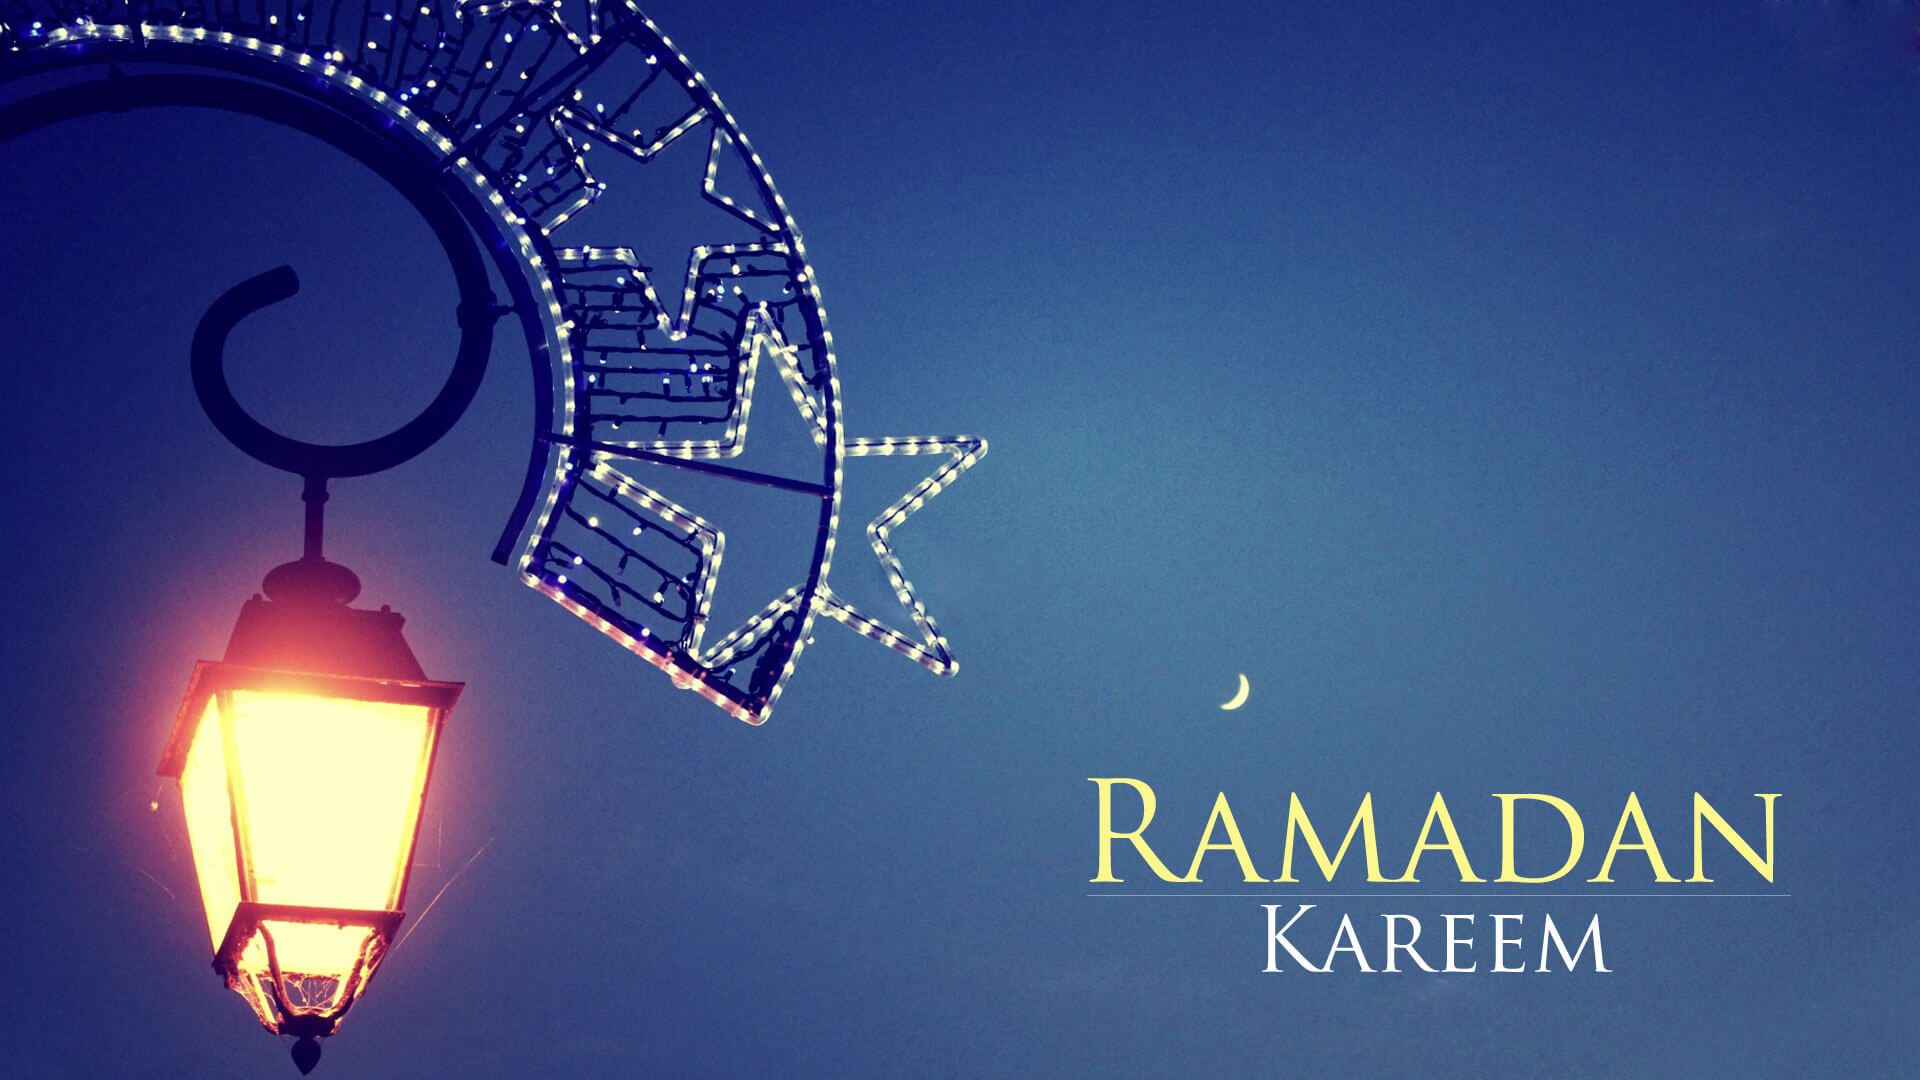 COVID-19 Parenting Tips for Ramadan